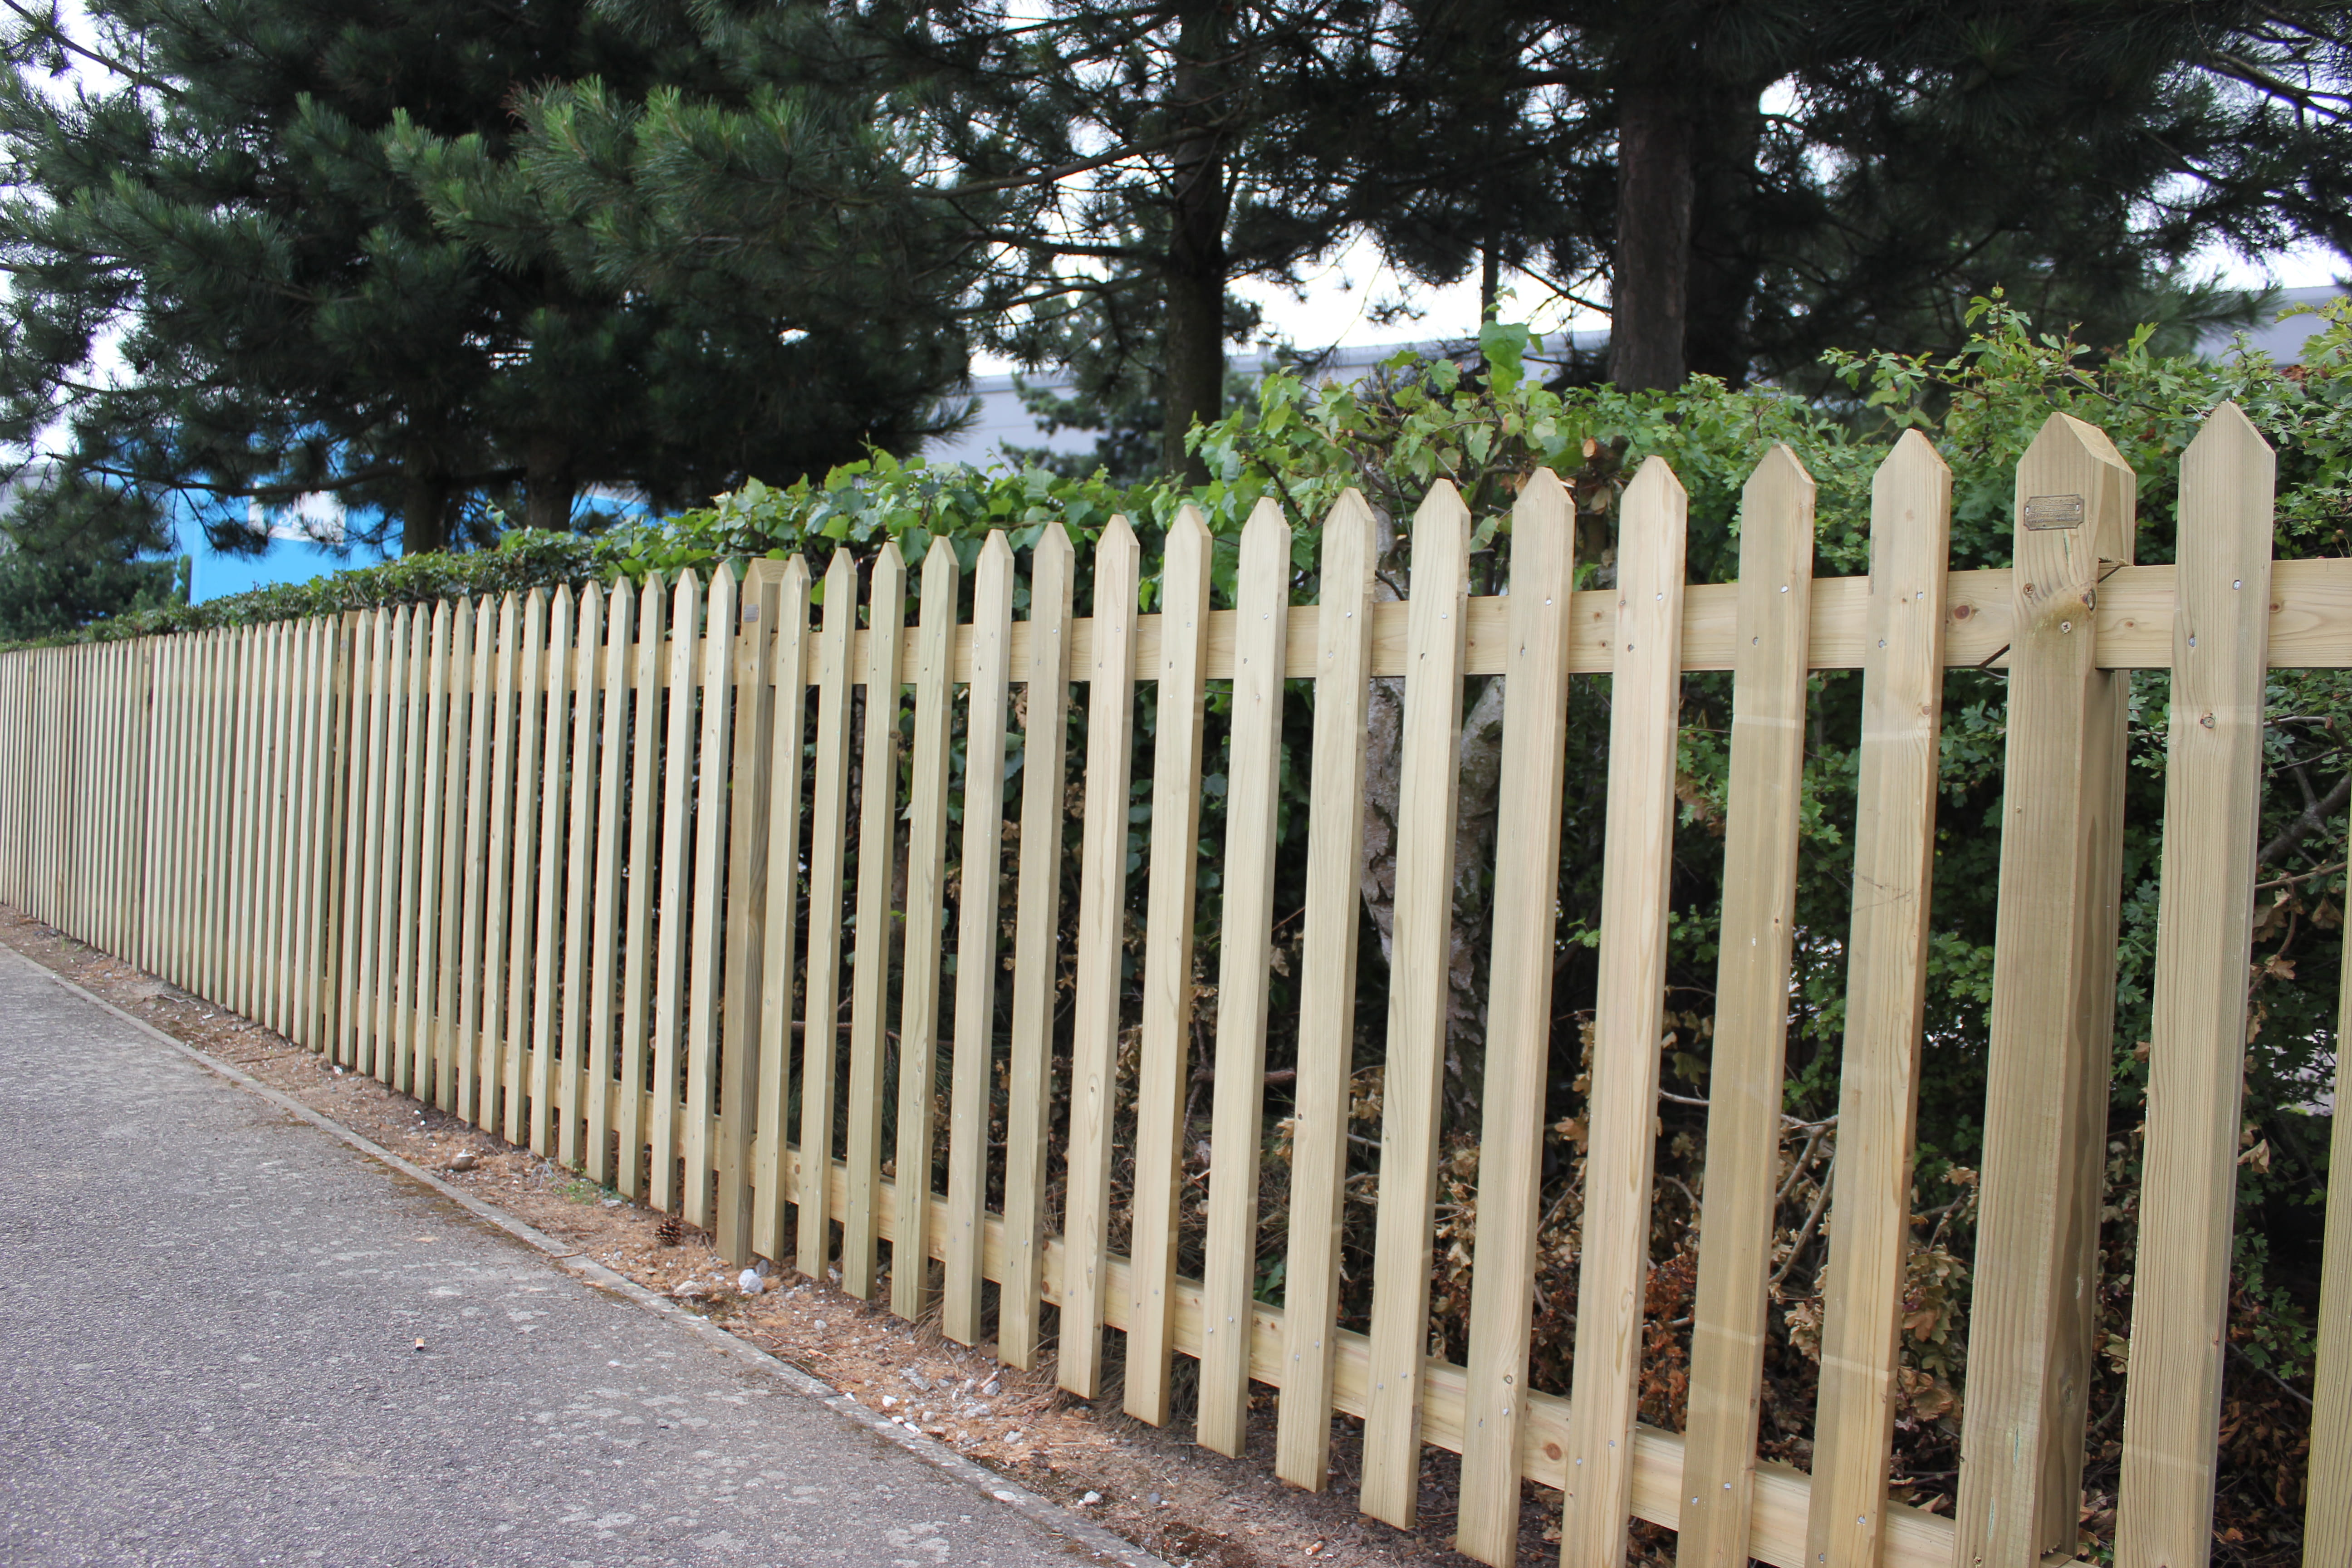 Paling Fence Designs Picket fencing jacksons fencing traditional picket fencing workwithnaturefo